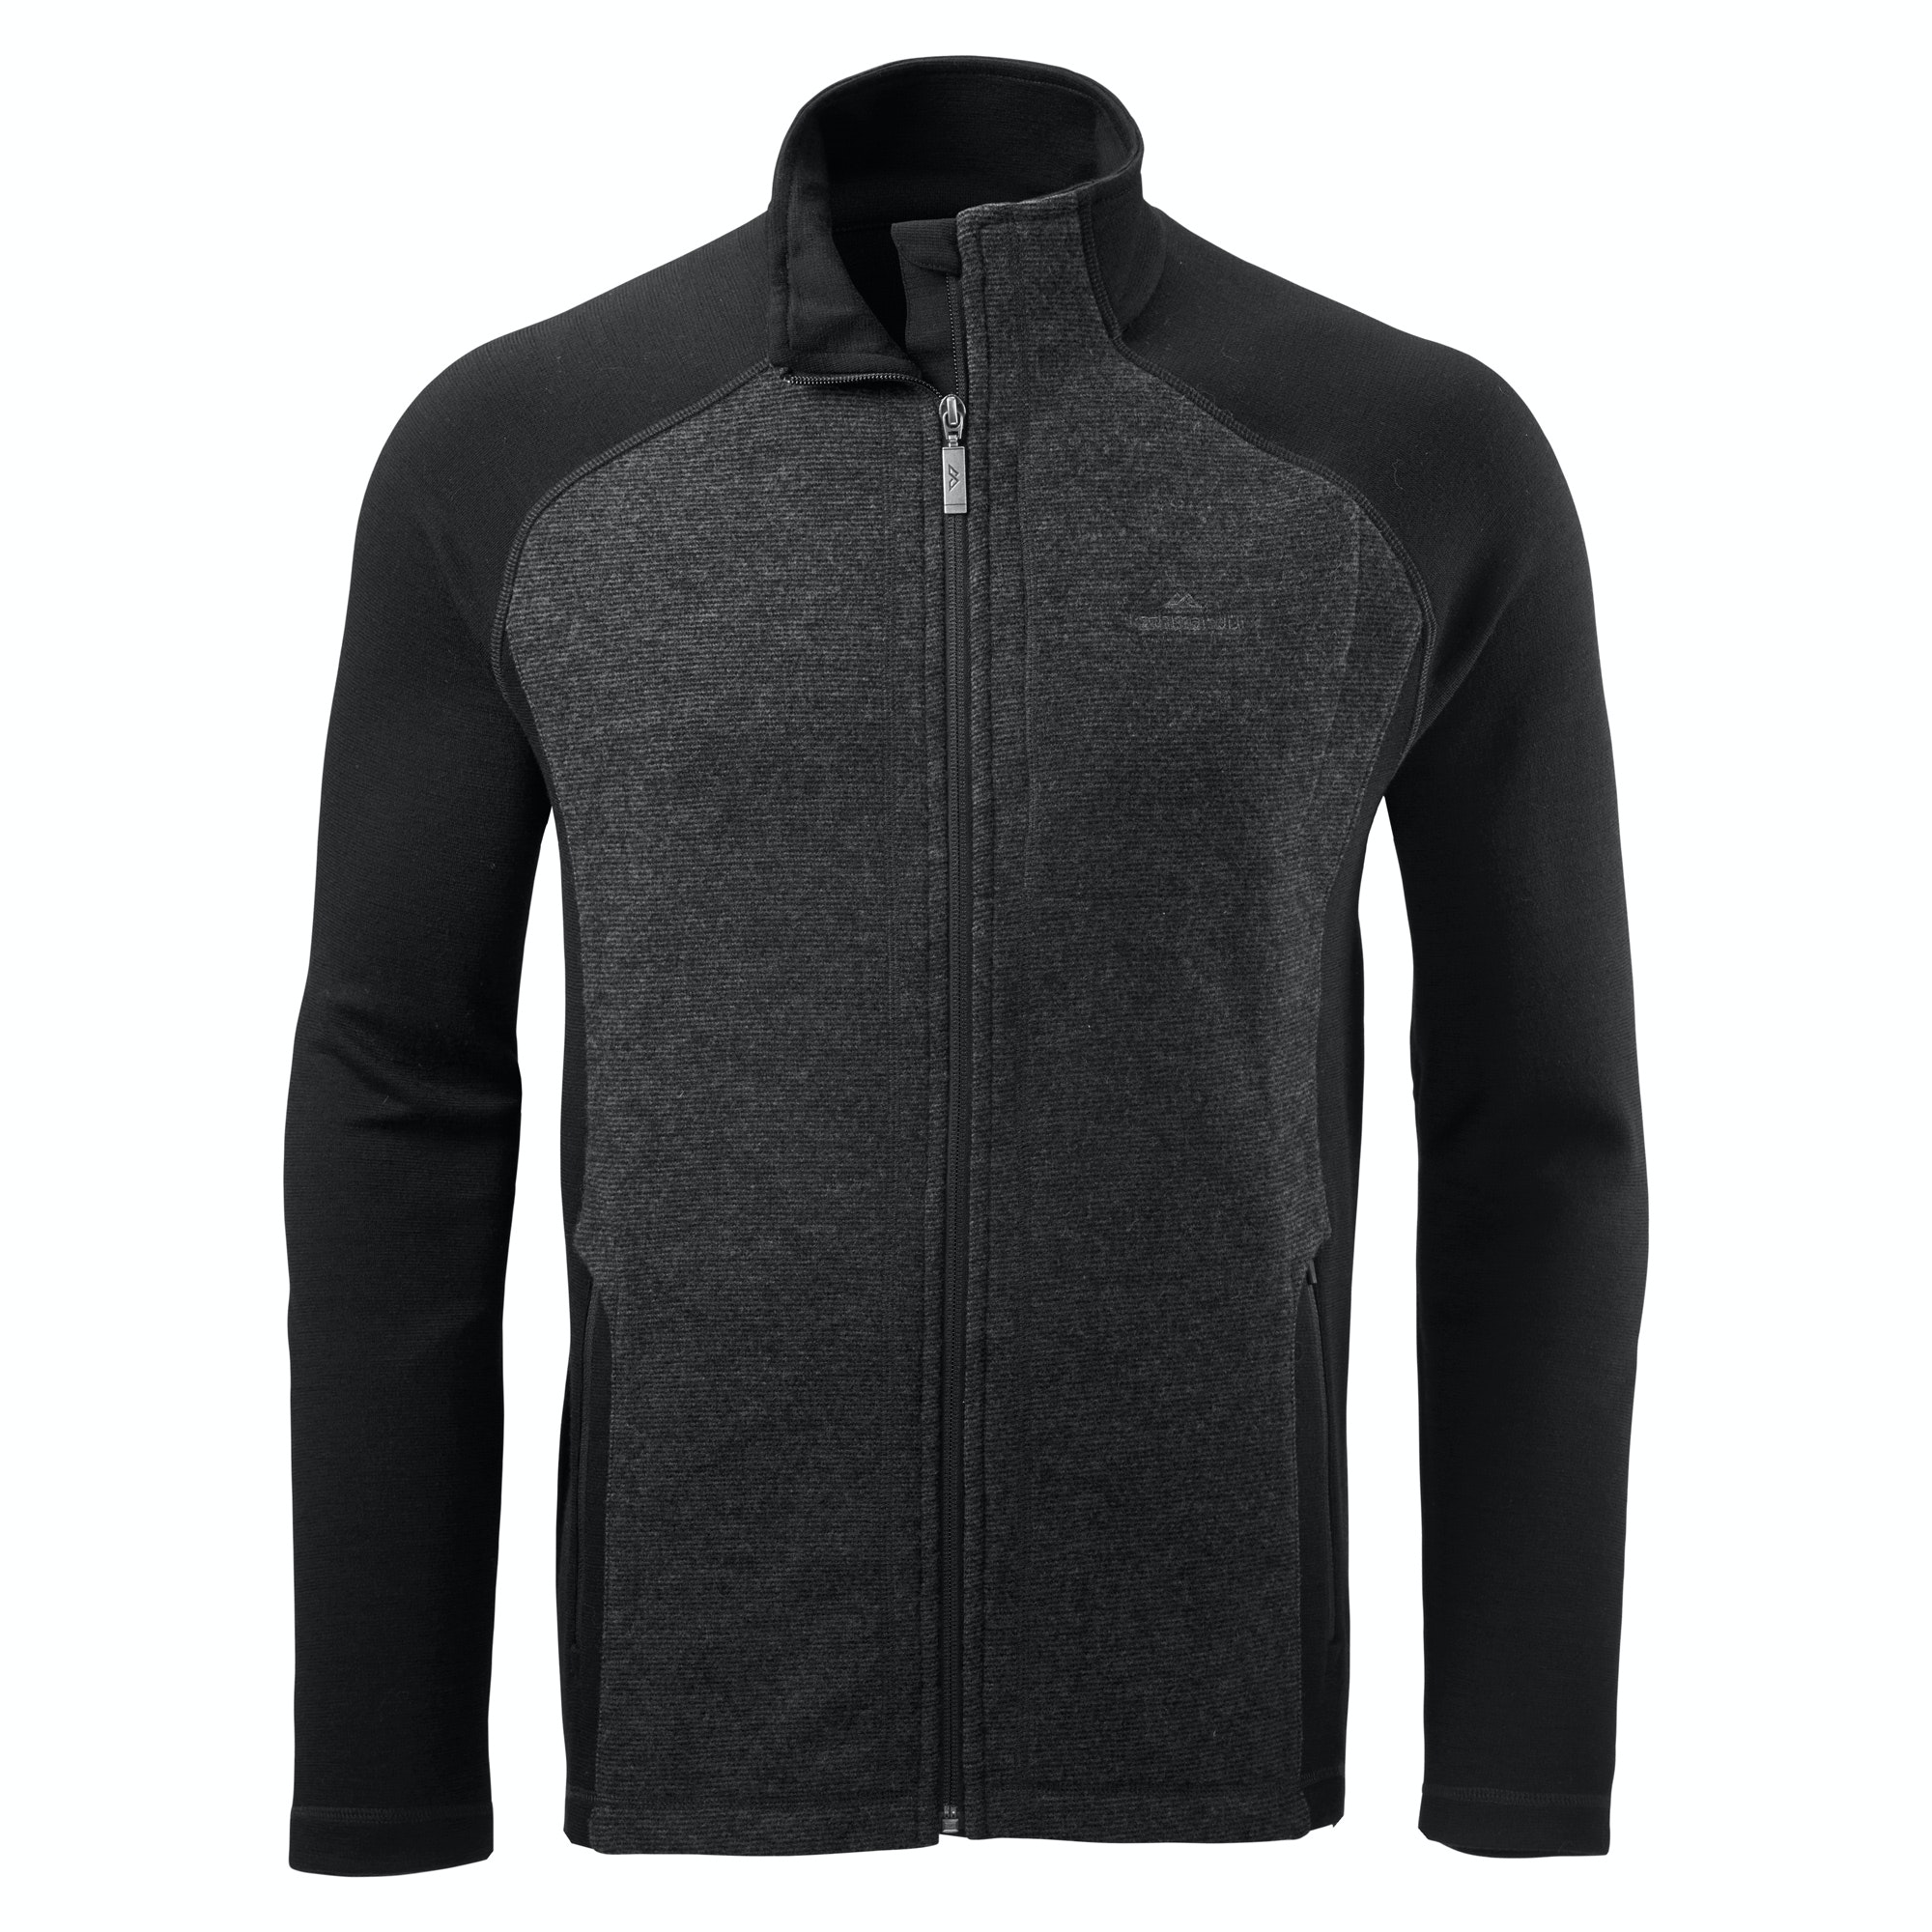 Barrier men 39 s merino jacket v2 charcoal for Merino wool shirts for travel